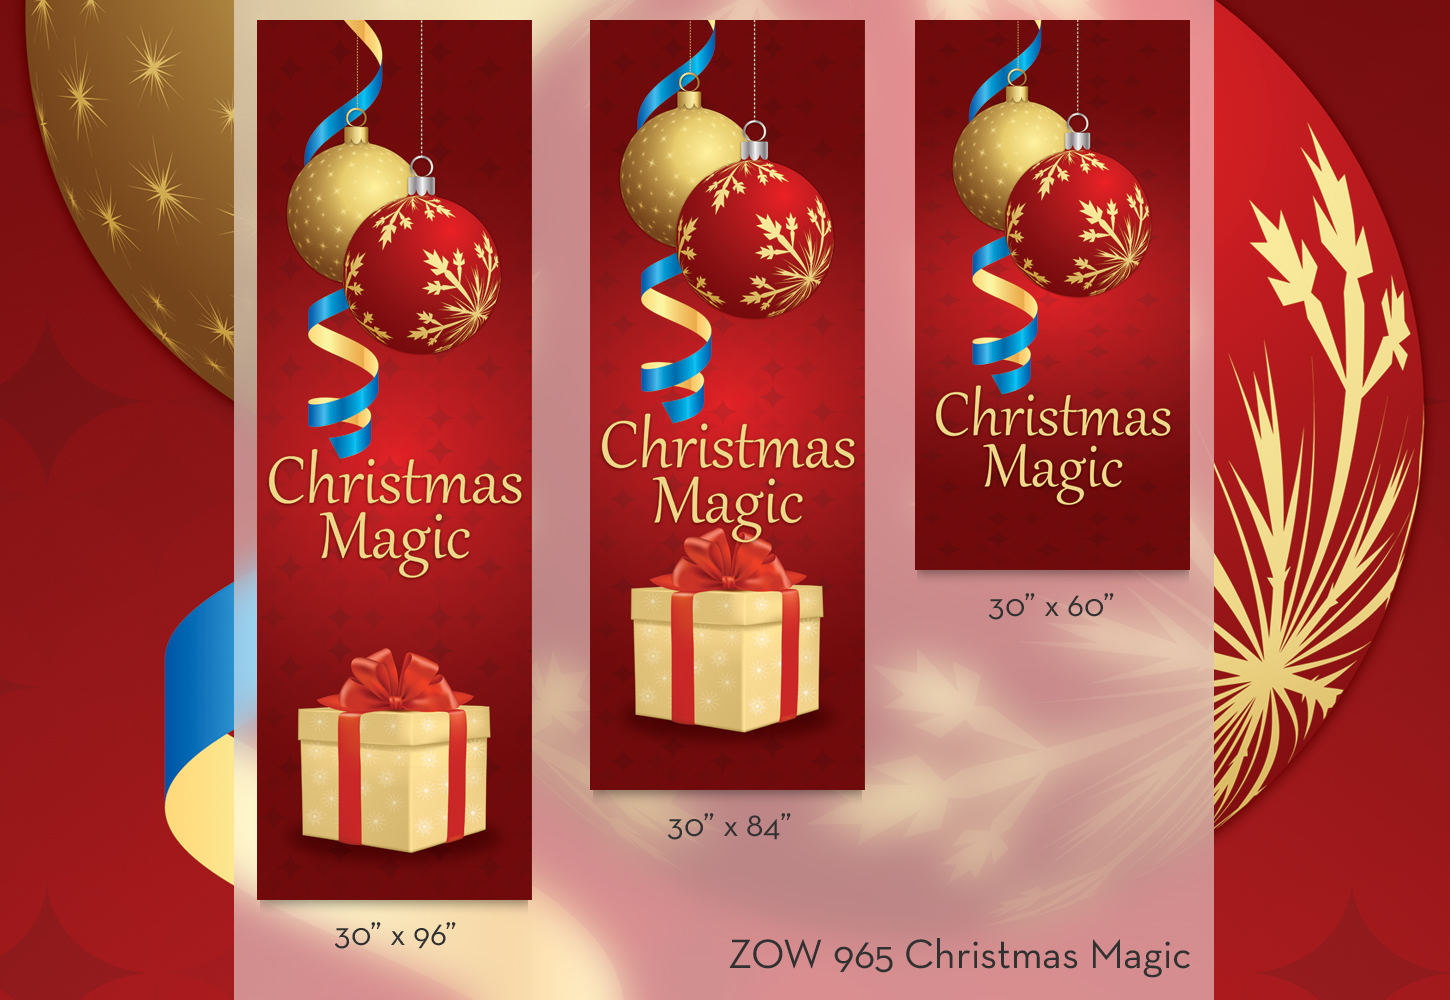 ZOW 965 Christmas Magic